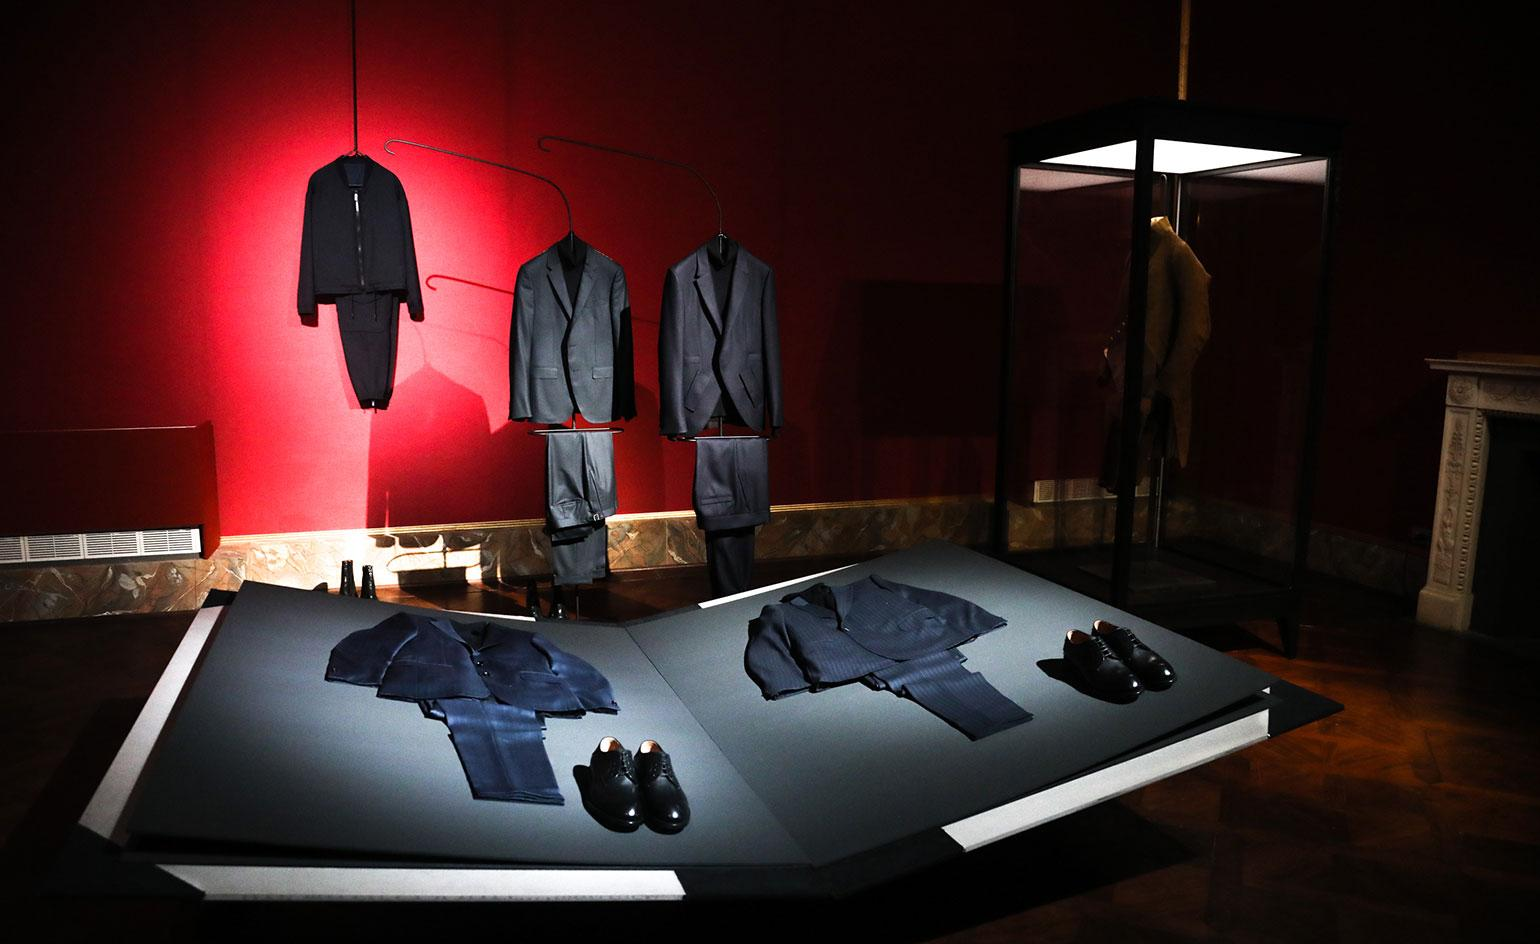 An exhibition at Pitti Uomo 96 explores the history of men's fashion